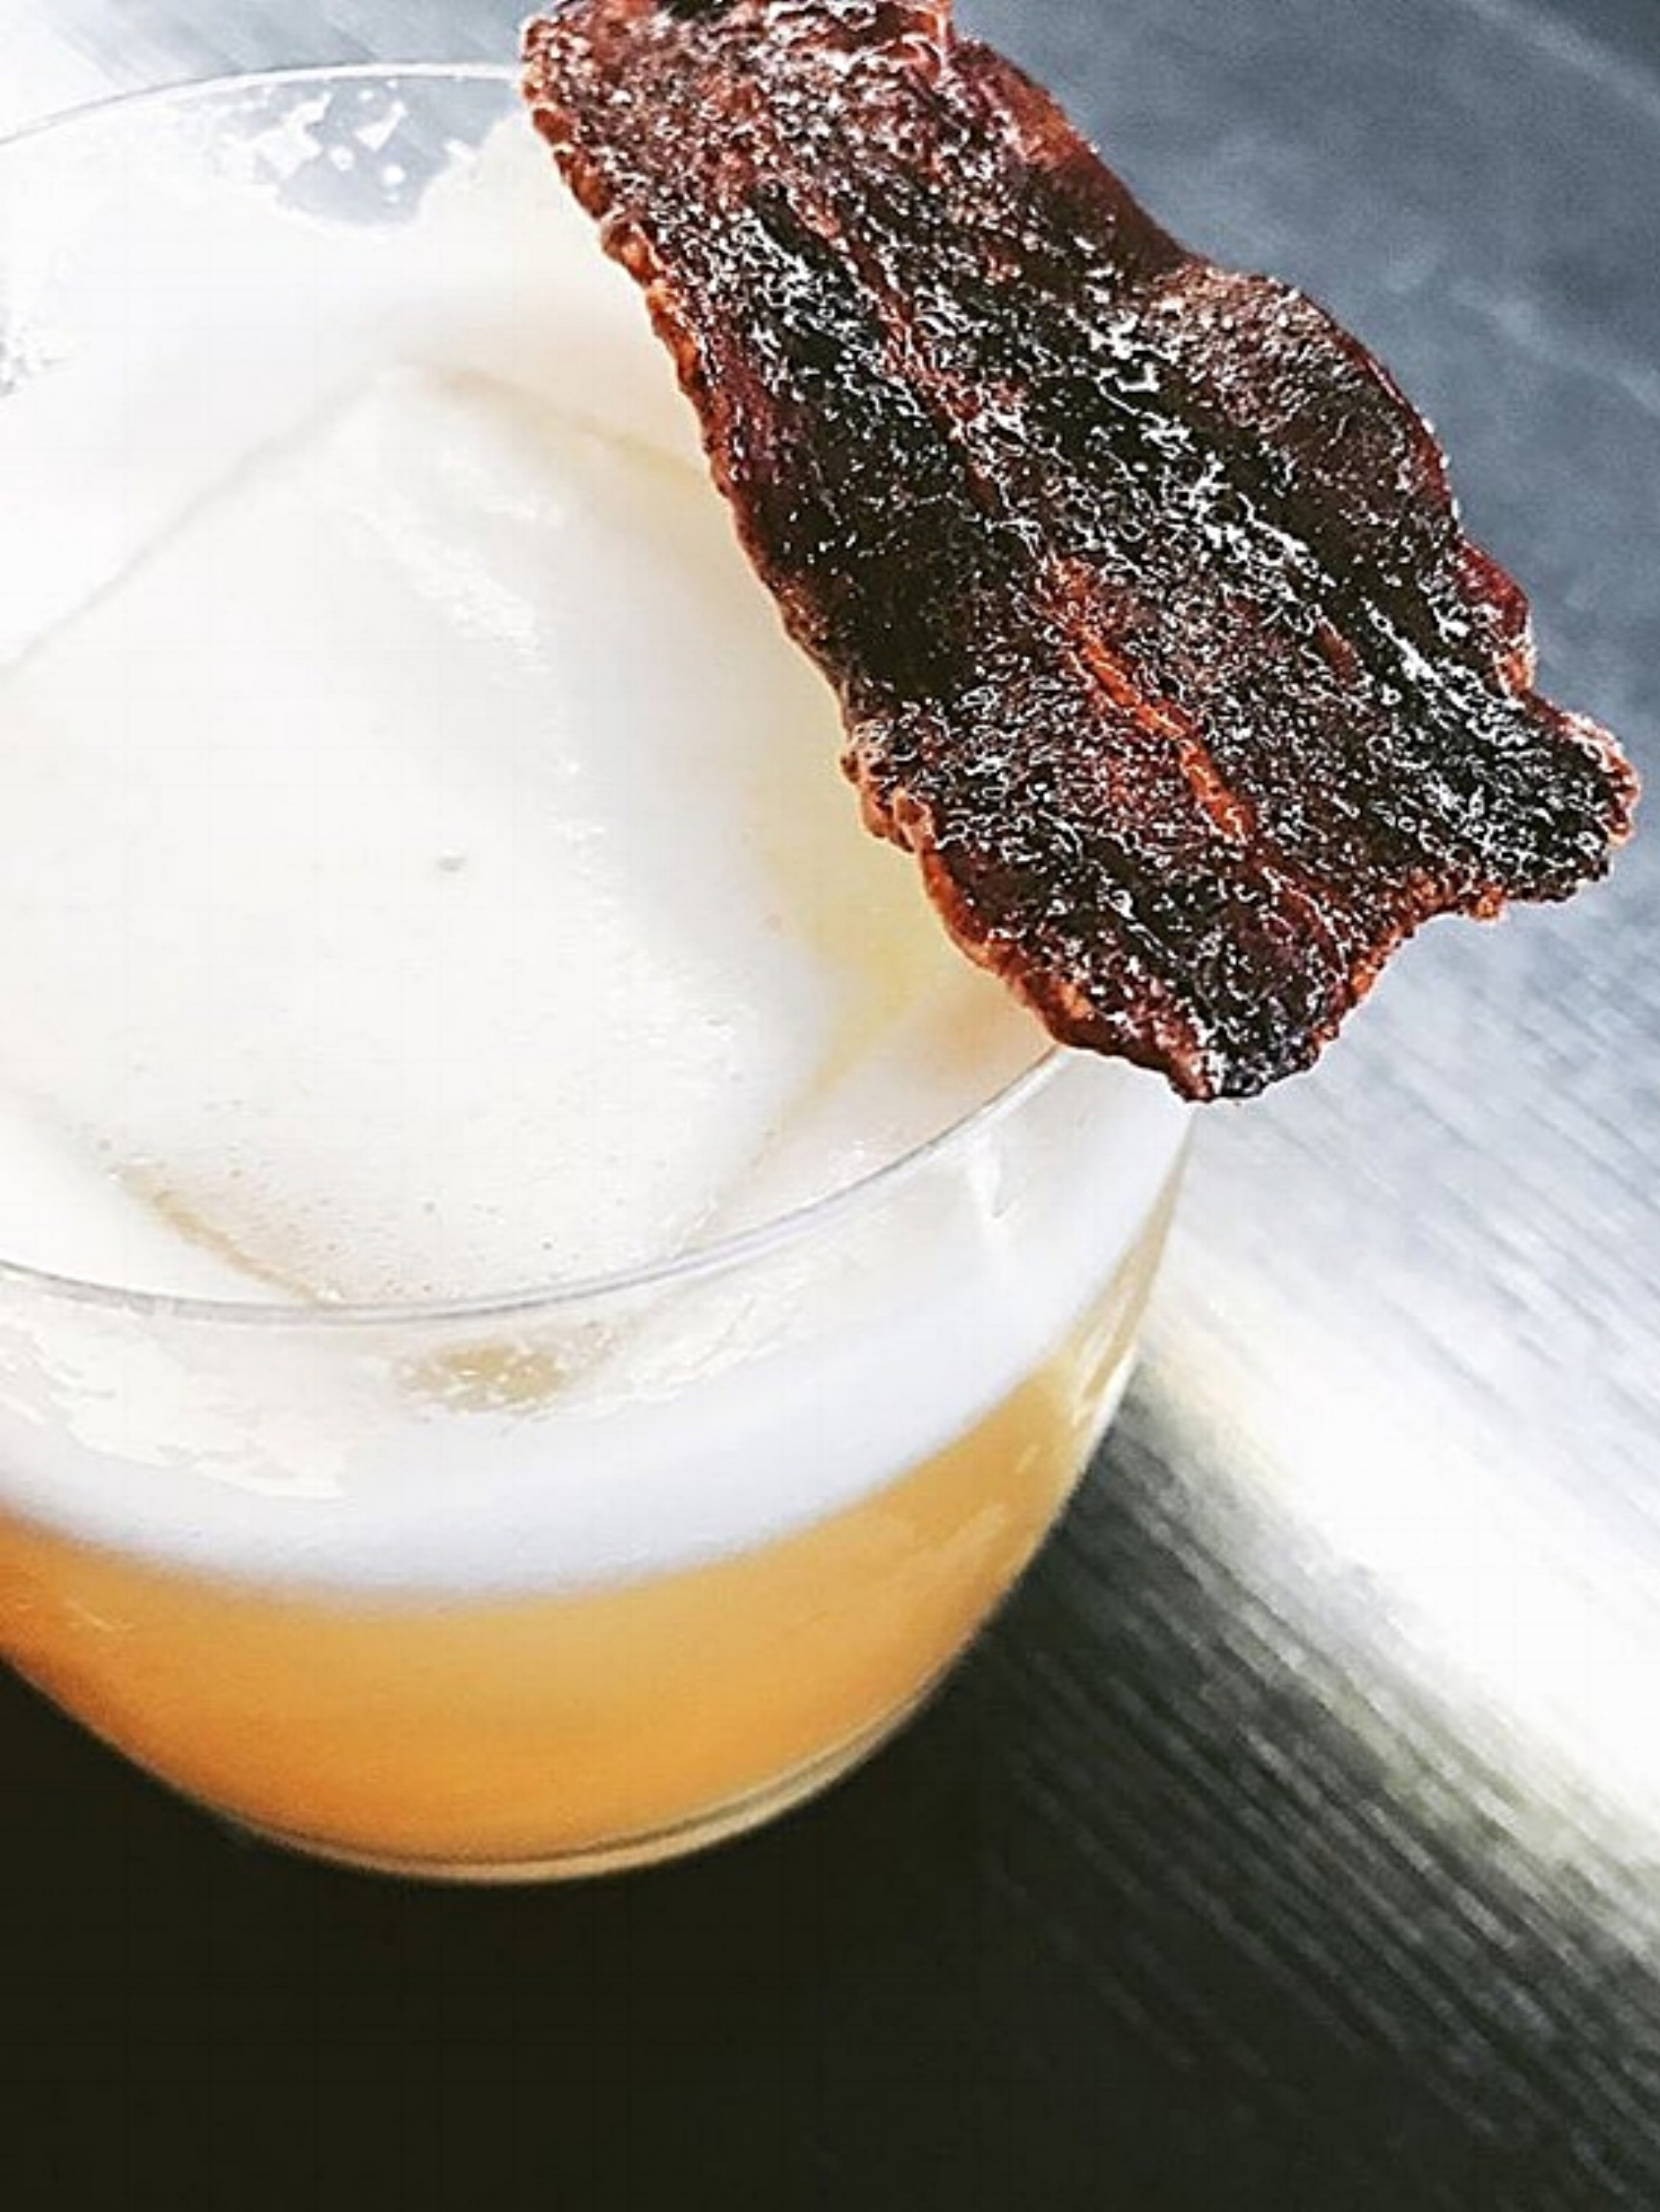 Bar Oso's signature Oso Sour. PC: @CharlesKoh_ via @BarOso_Whistler on IG.